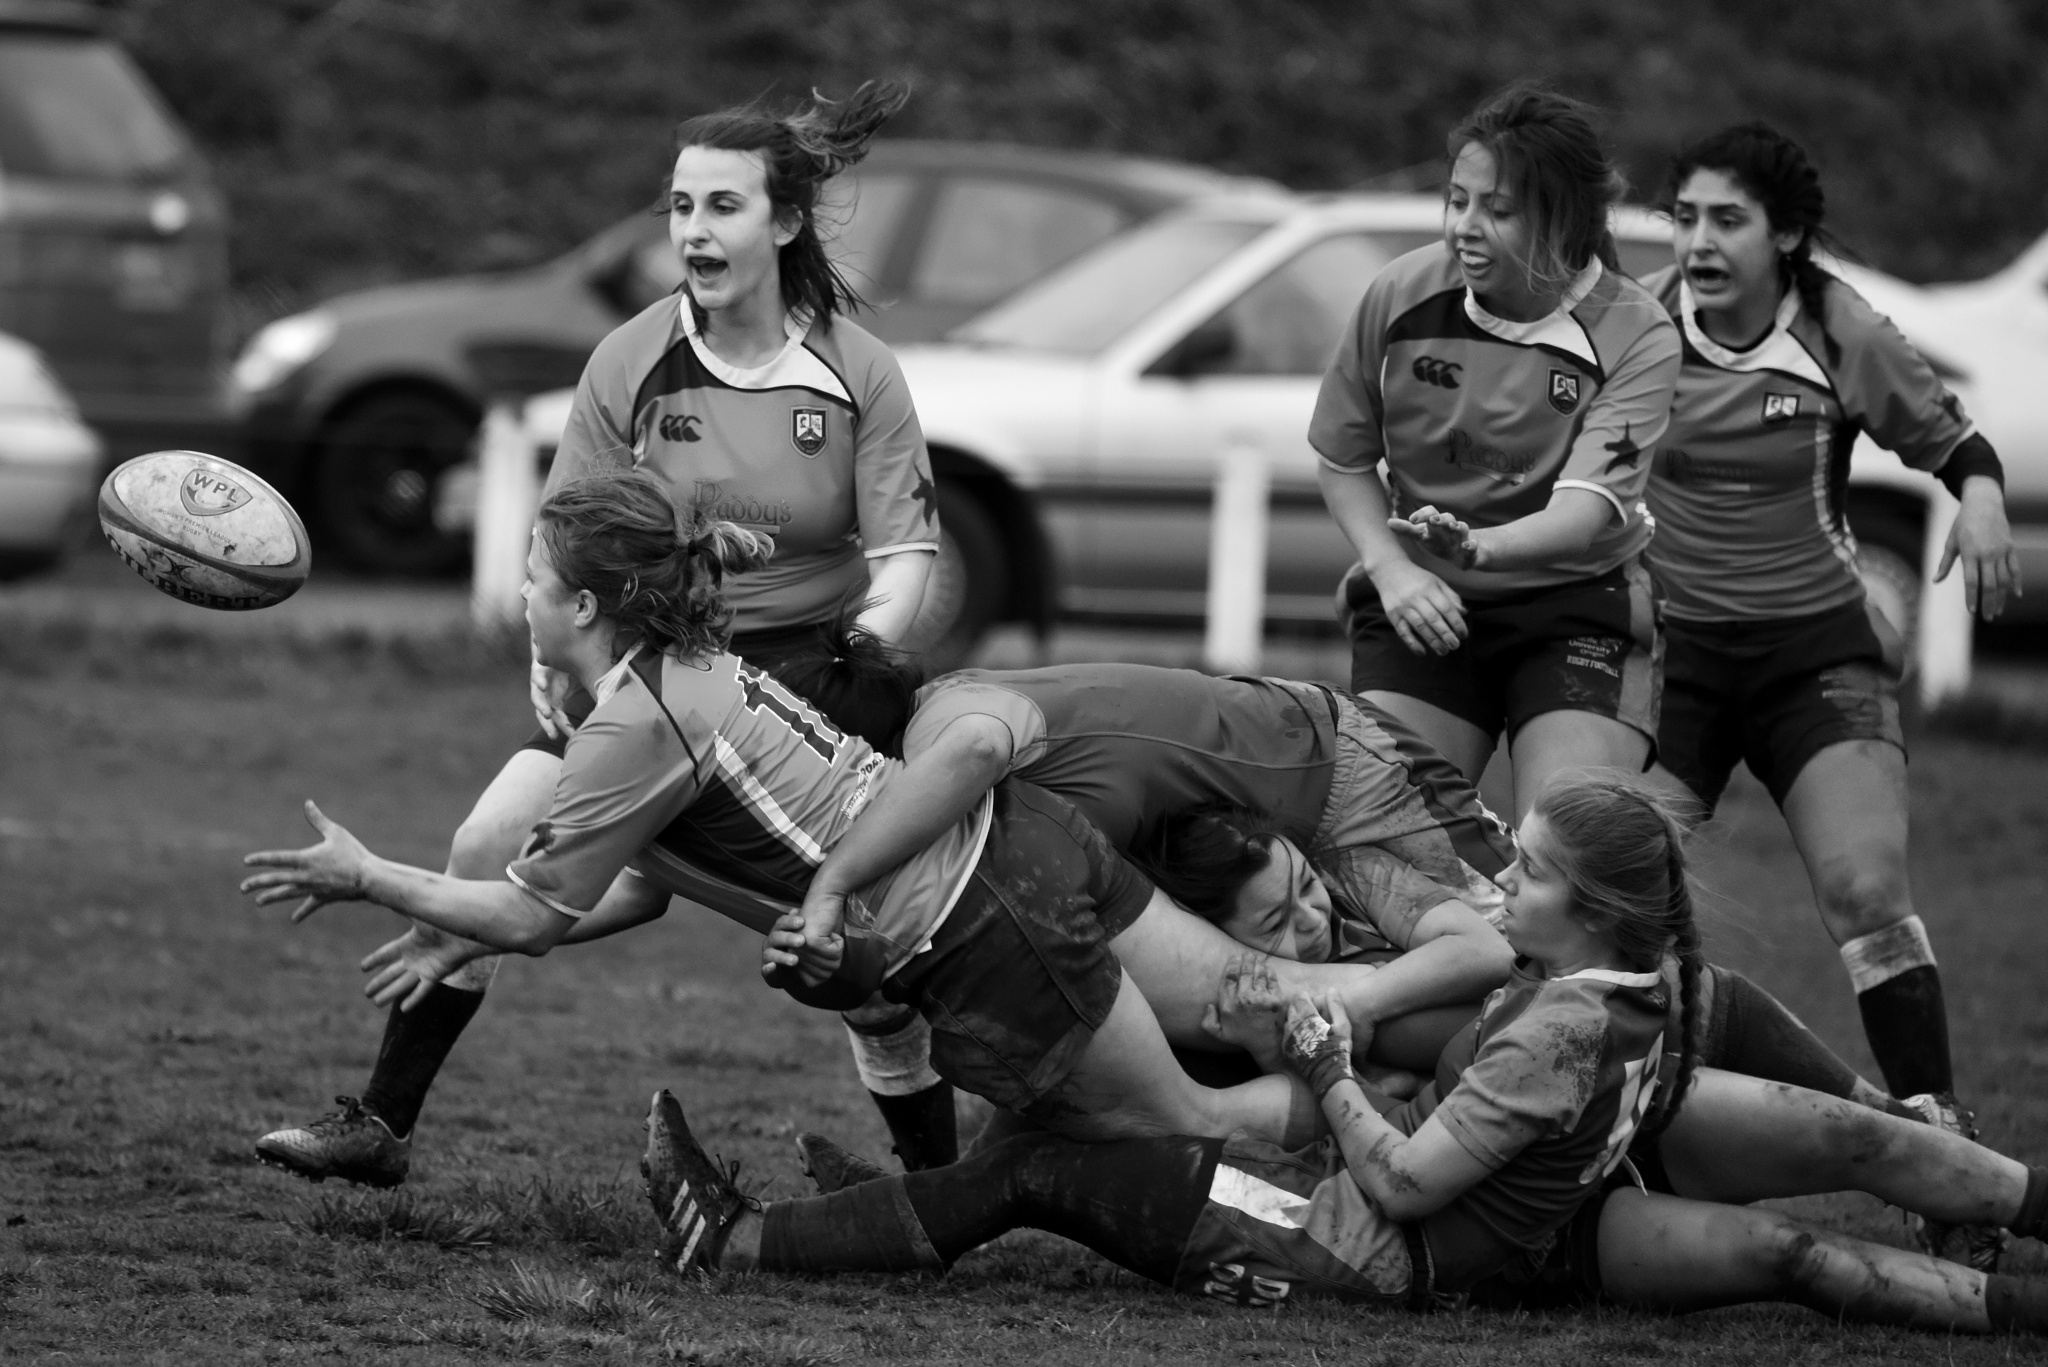 Gang Tackle by Mike Payne